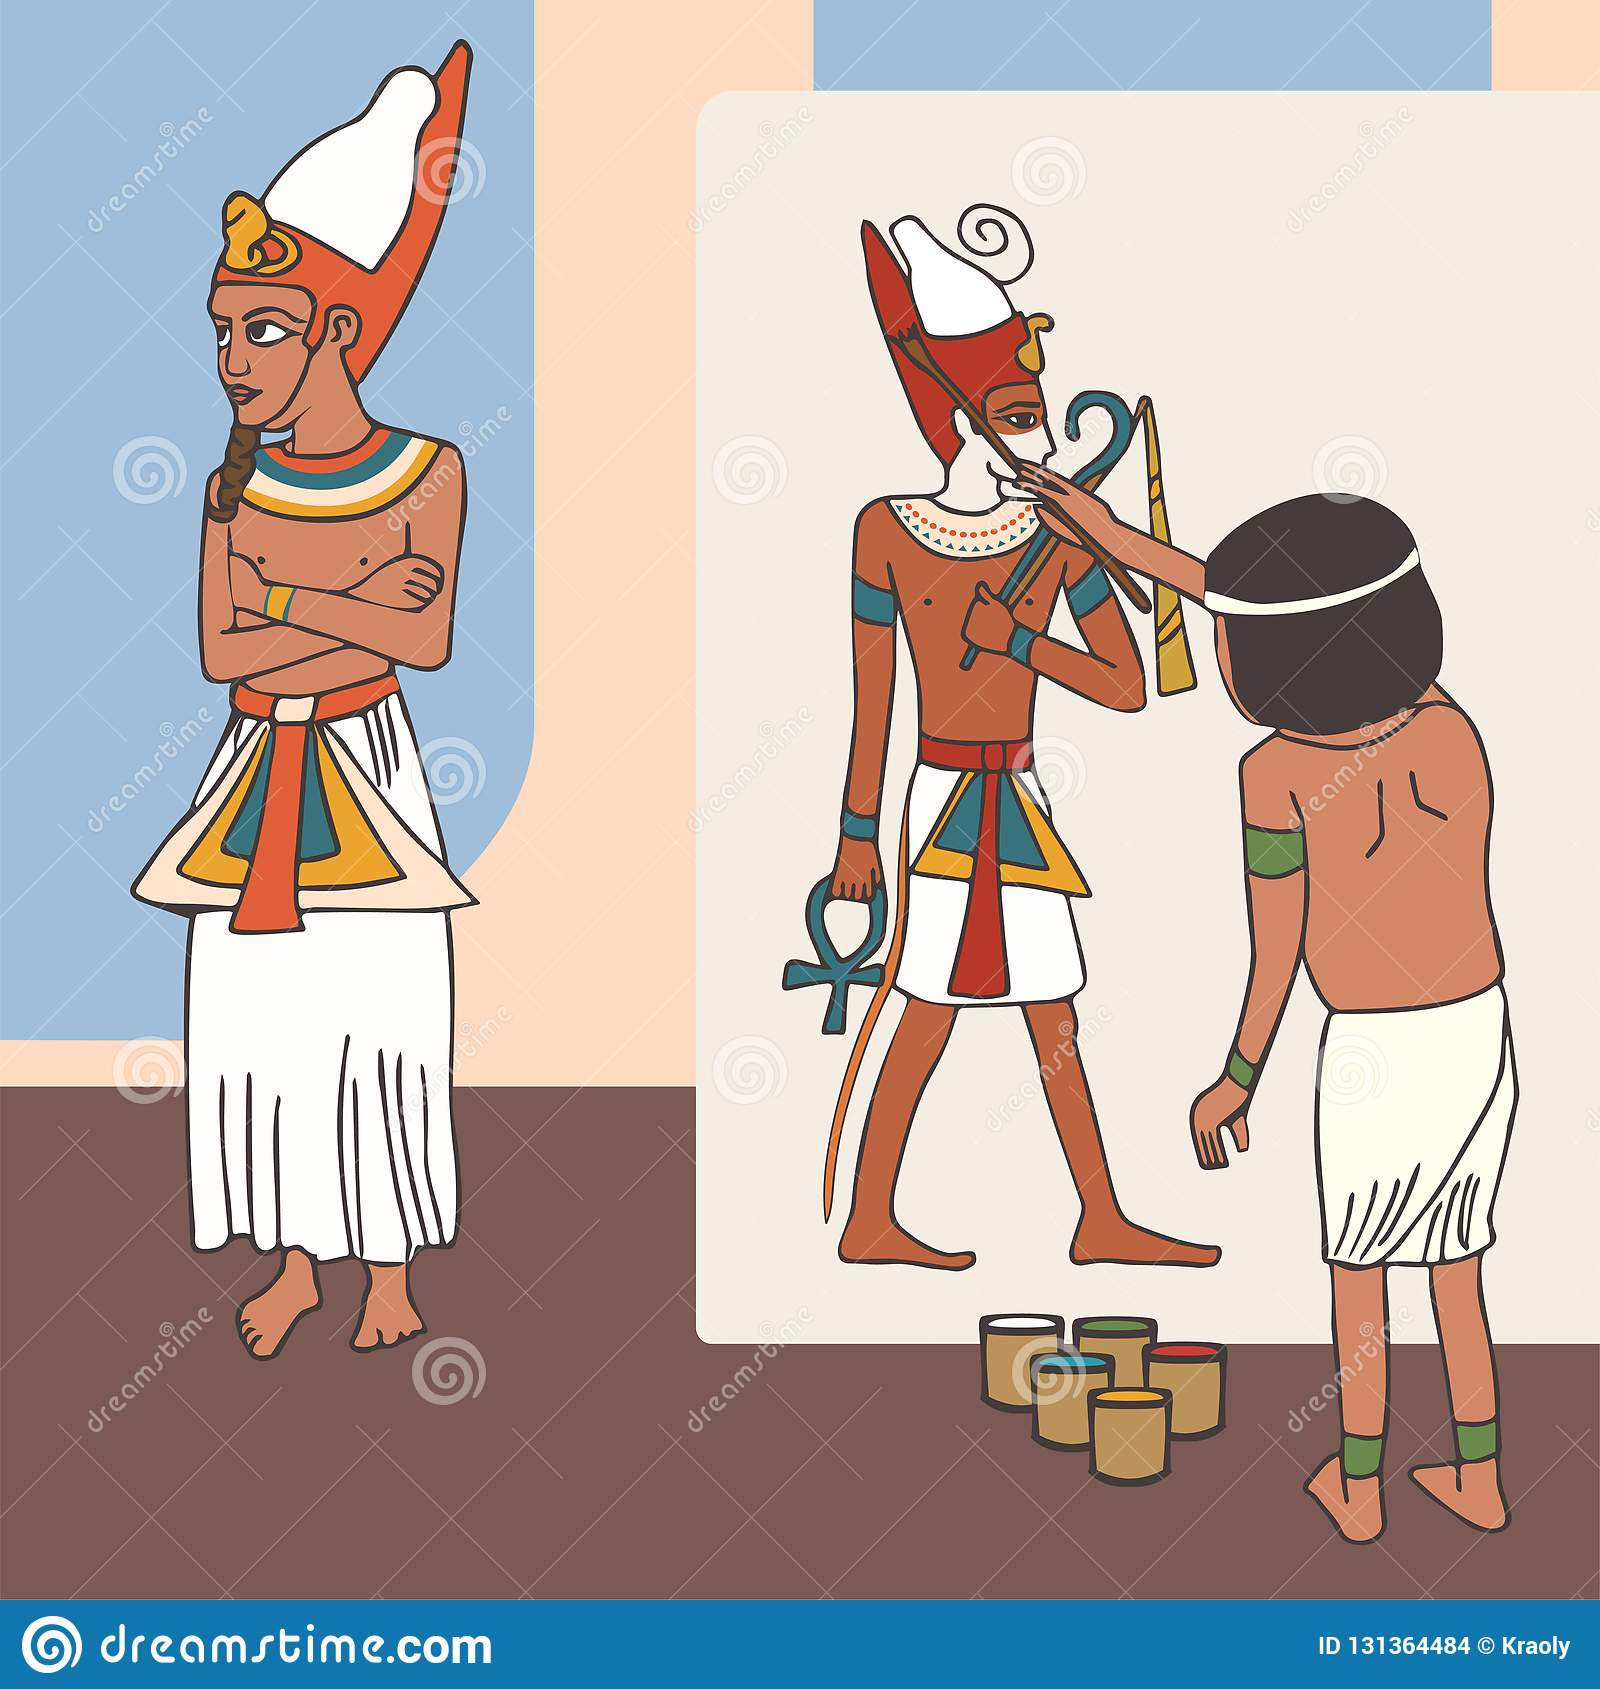 Funny Pictures About Egypt: Symbolism Of Ancient Egyptian Art, Funny Cartoon Stock